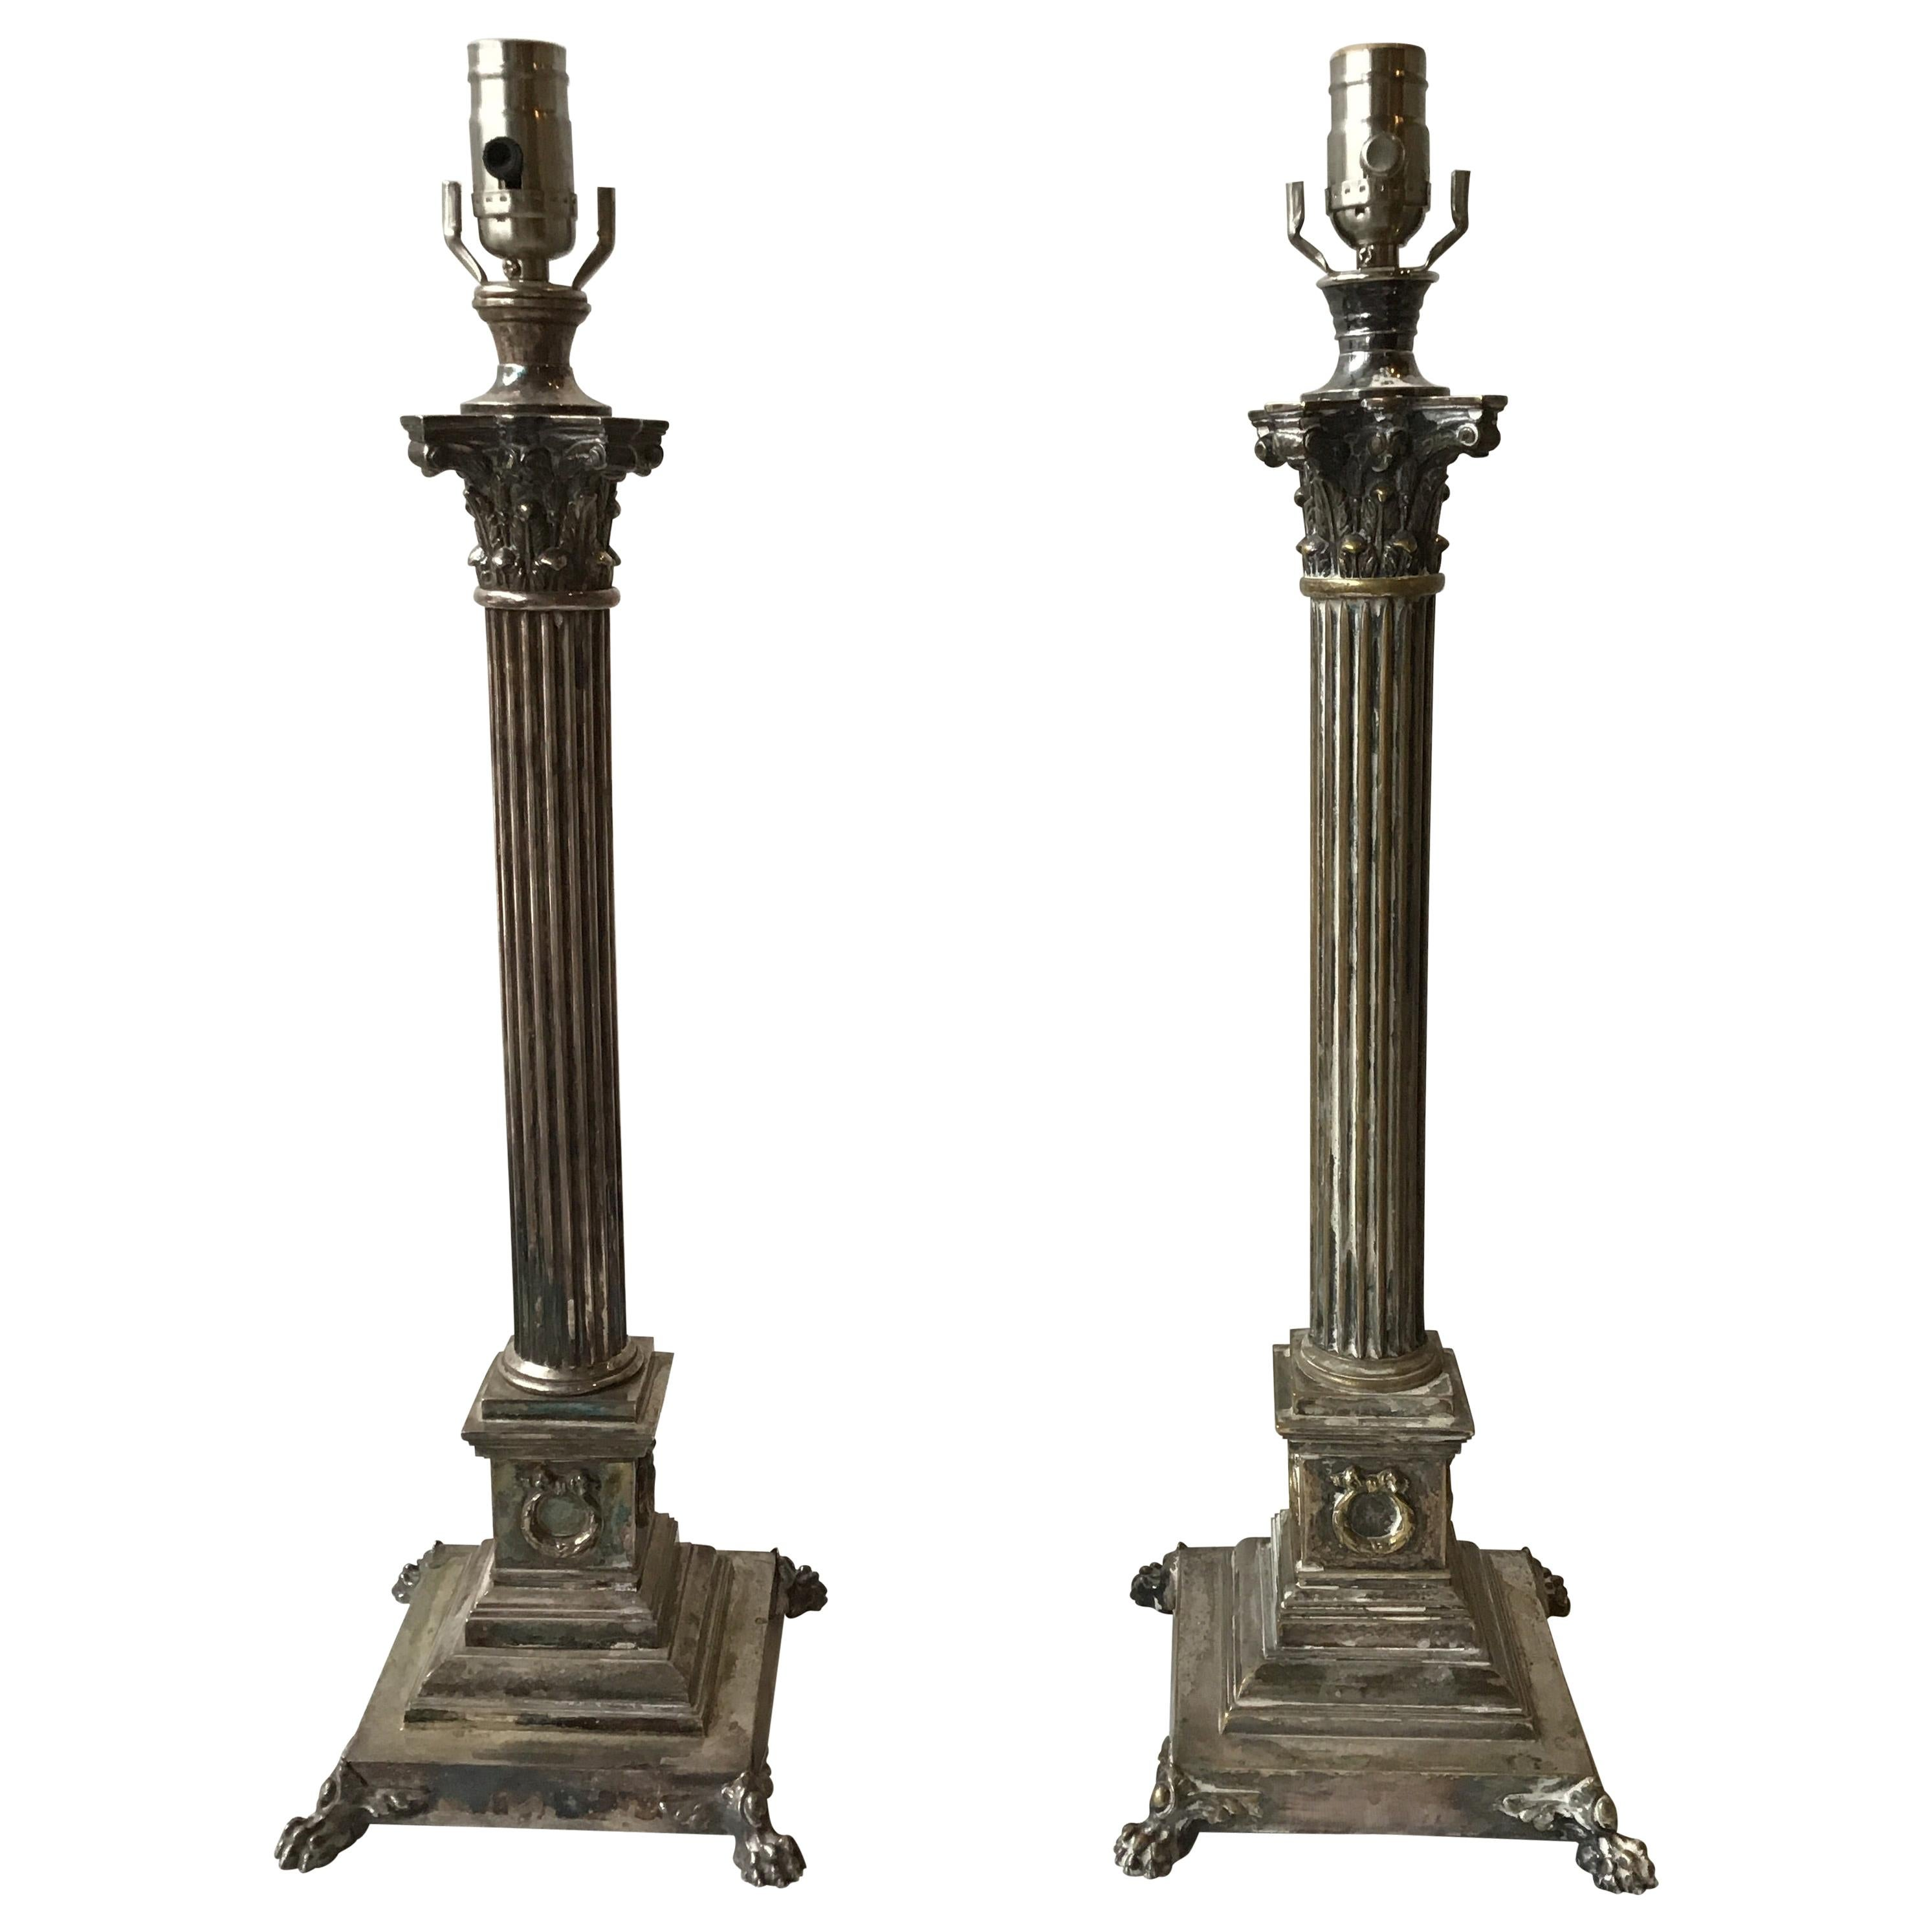 Pair of 1880s Tall Silver Plate Column Lamps